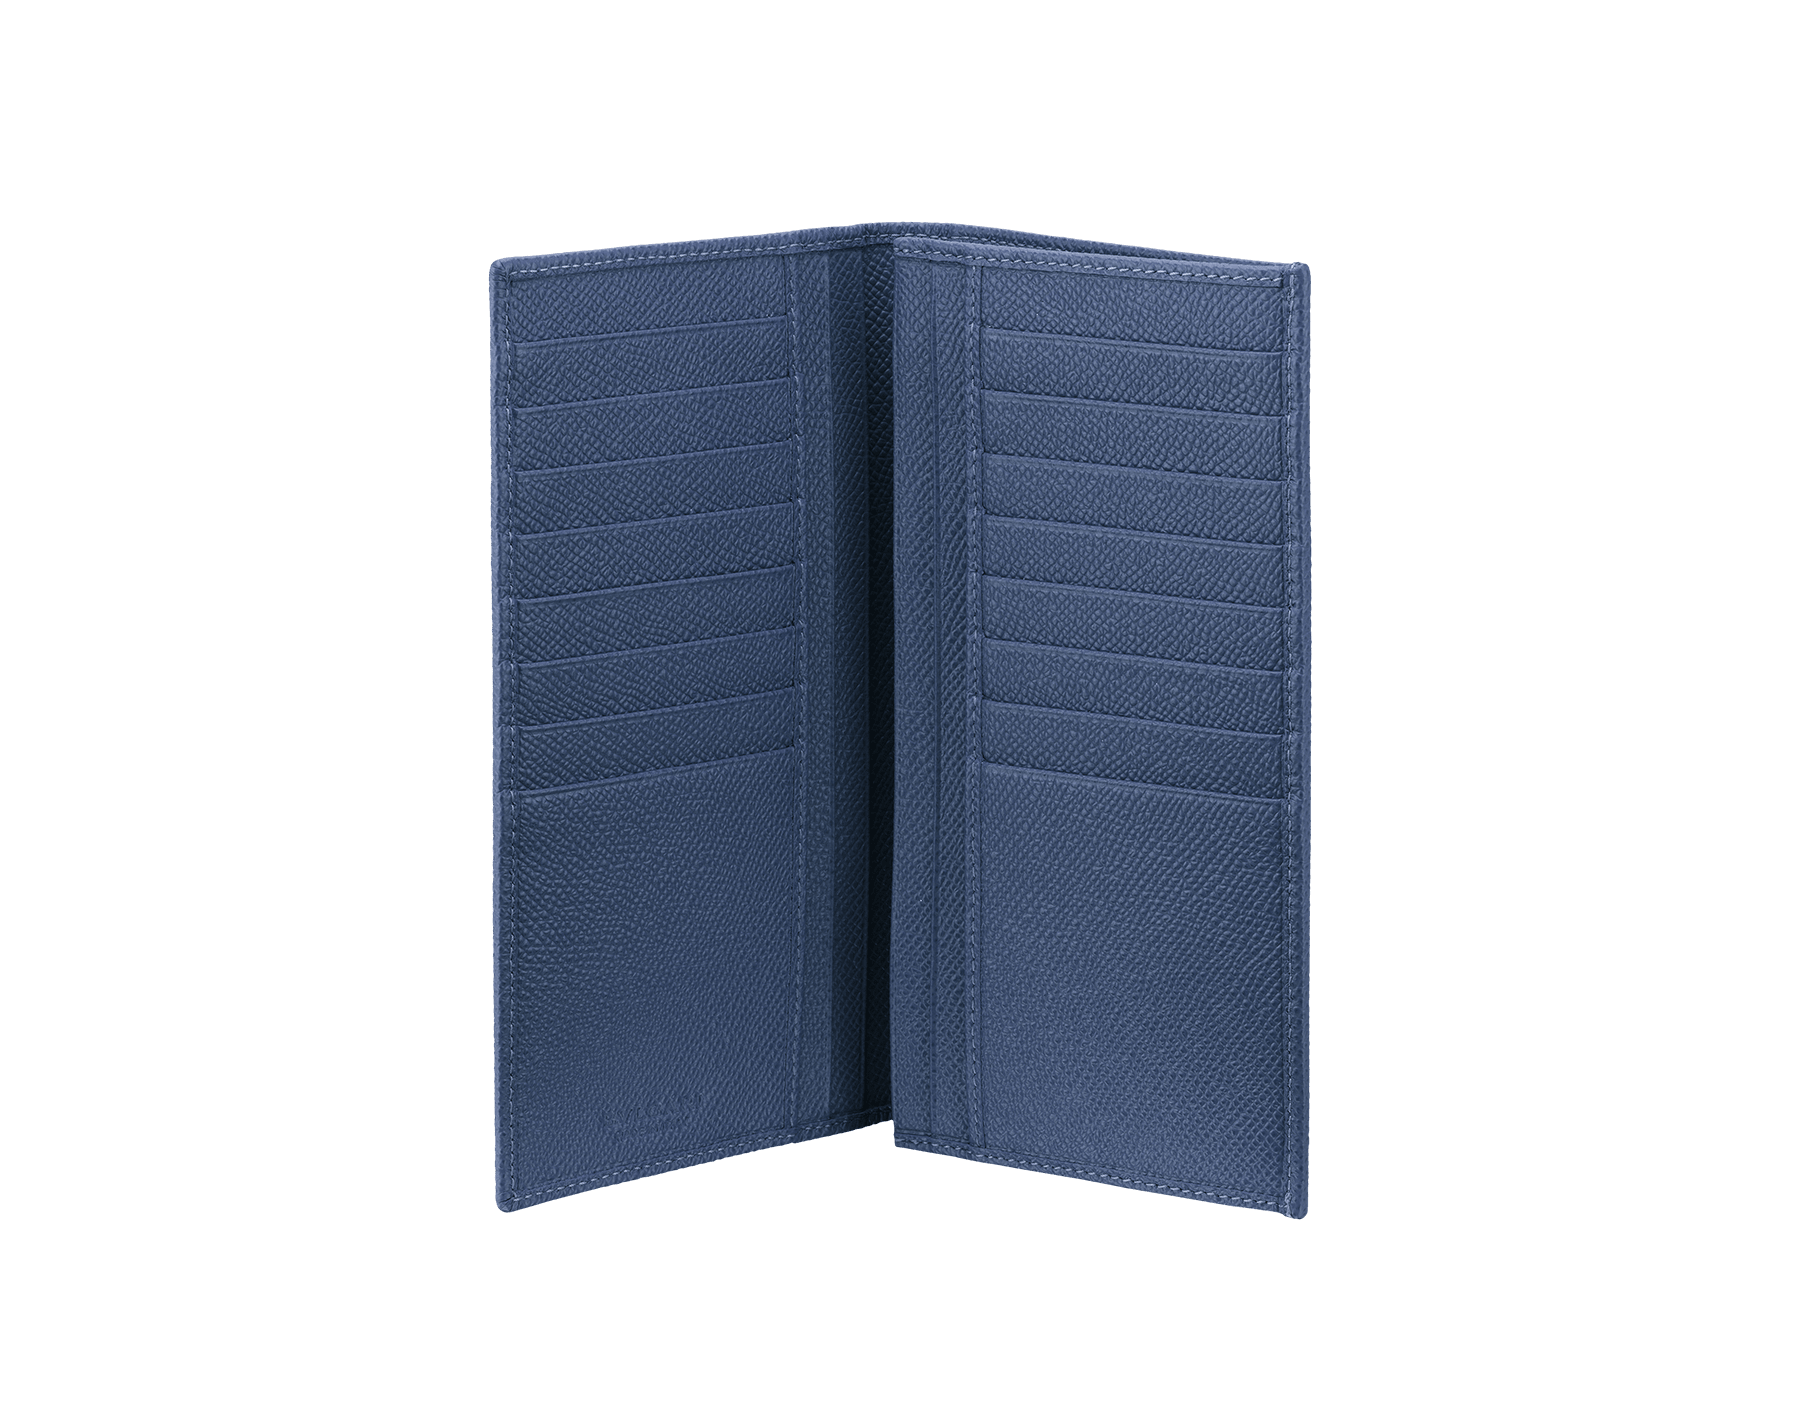 Wallet for yen in denim sapphire grain calf leather with brass palladium plated hardware and iconic BVLGARI BVLGARI motif. 285738 image 2